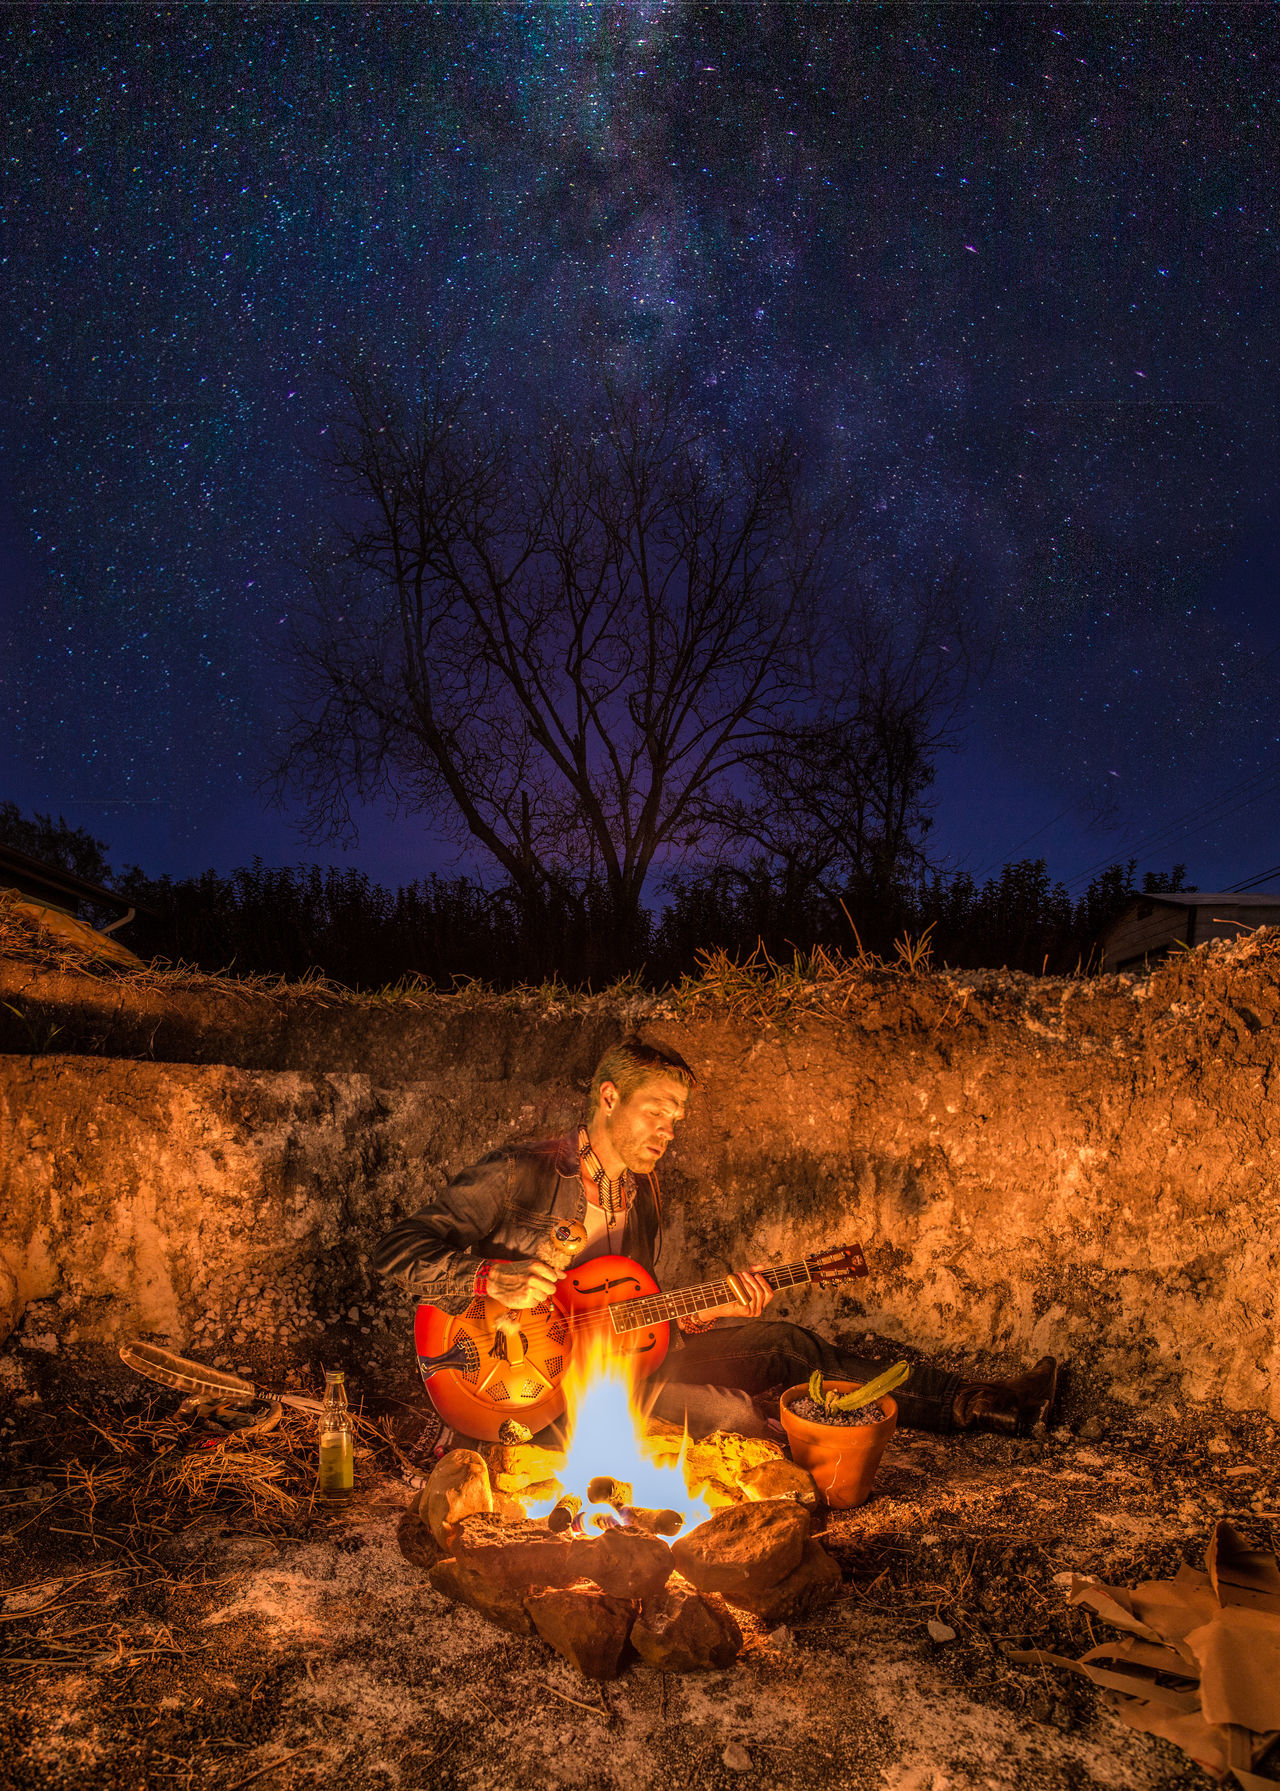 Beautiful stock photos of universe, night, fire - natural phenomenon, flame, heat - temperature